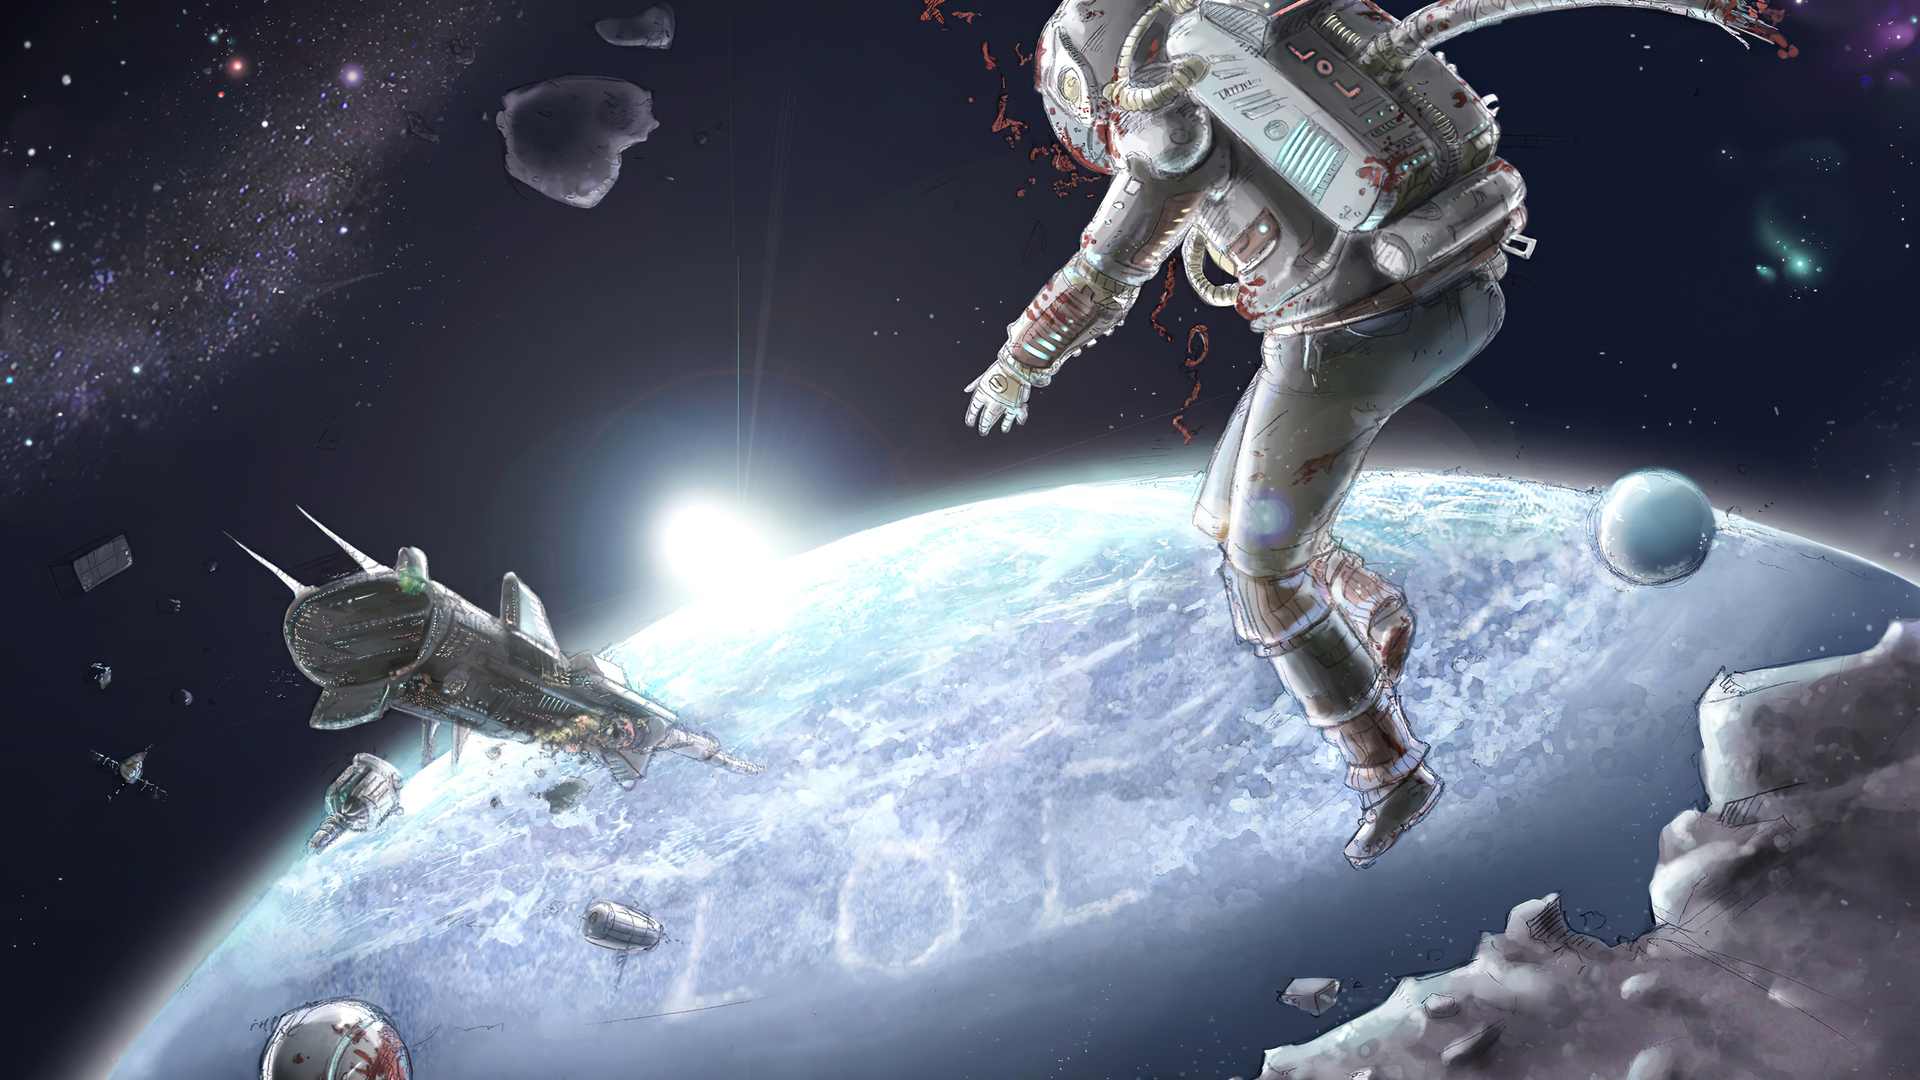 1920x1080 Astronaut Scifi Space 4k Laptop Full Hd 1080p Hd 4k Wallpapers Images Backgrounds Photos And Pictures